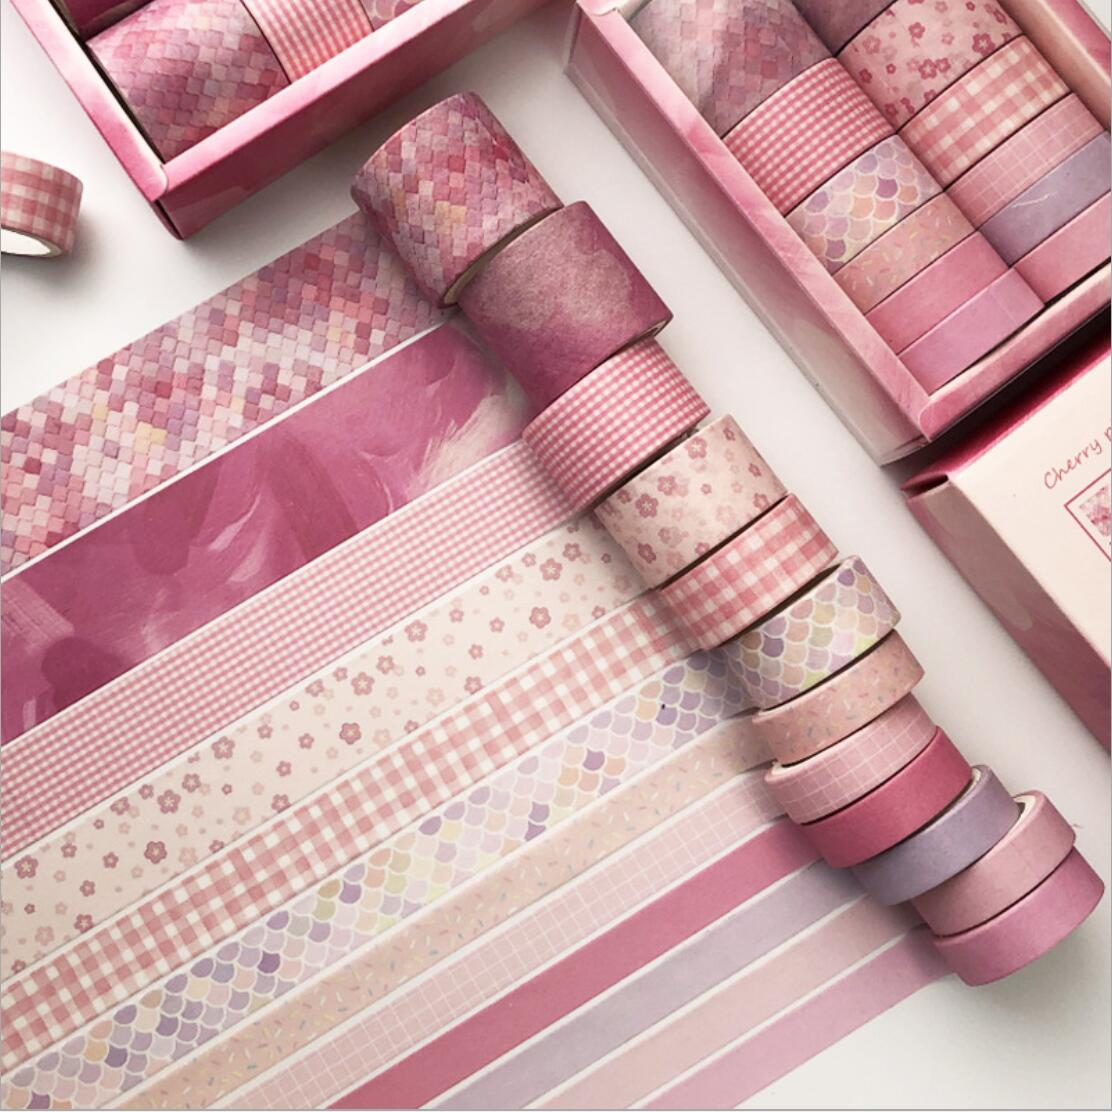 12 Pcs/set The Pink Motion Party Washi Tape Set Scrapbooking DIY Bullet Journal Stationery Masking Tape School Office